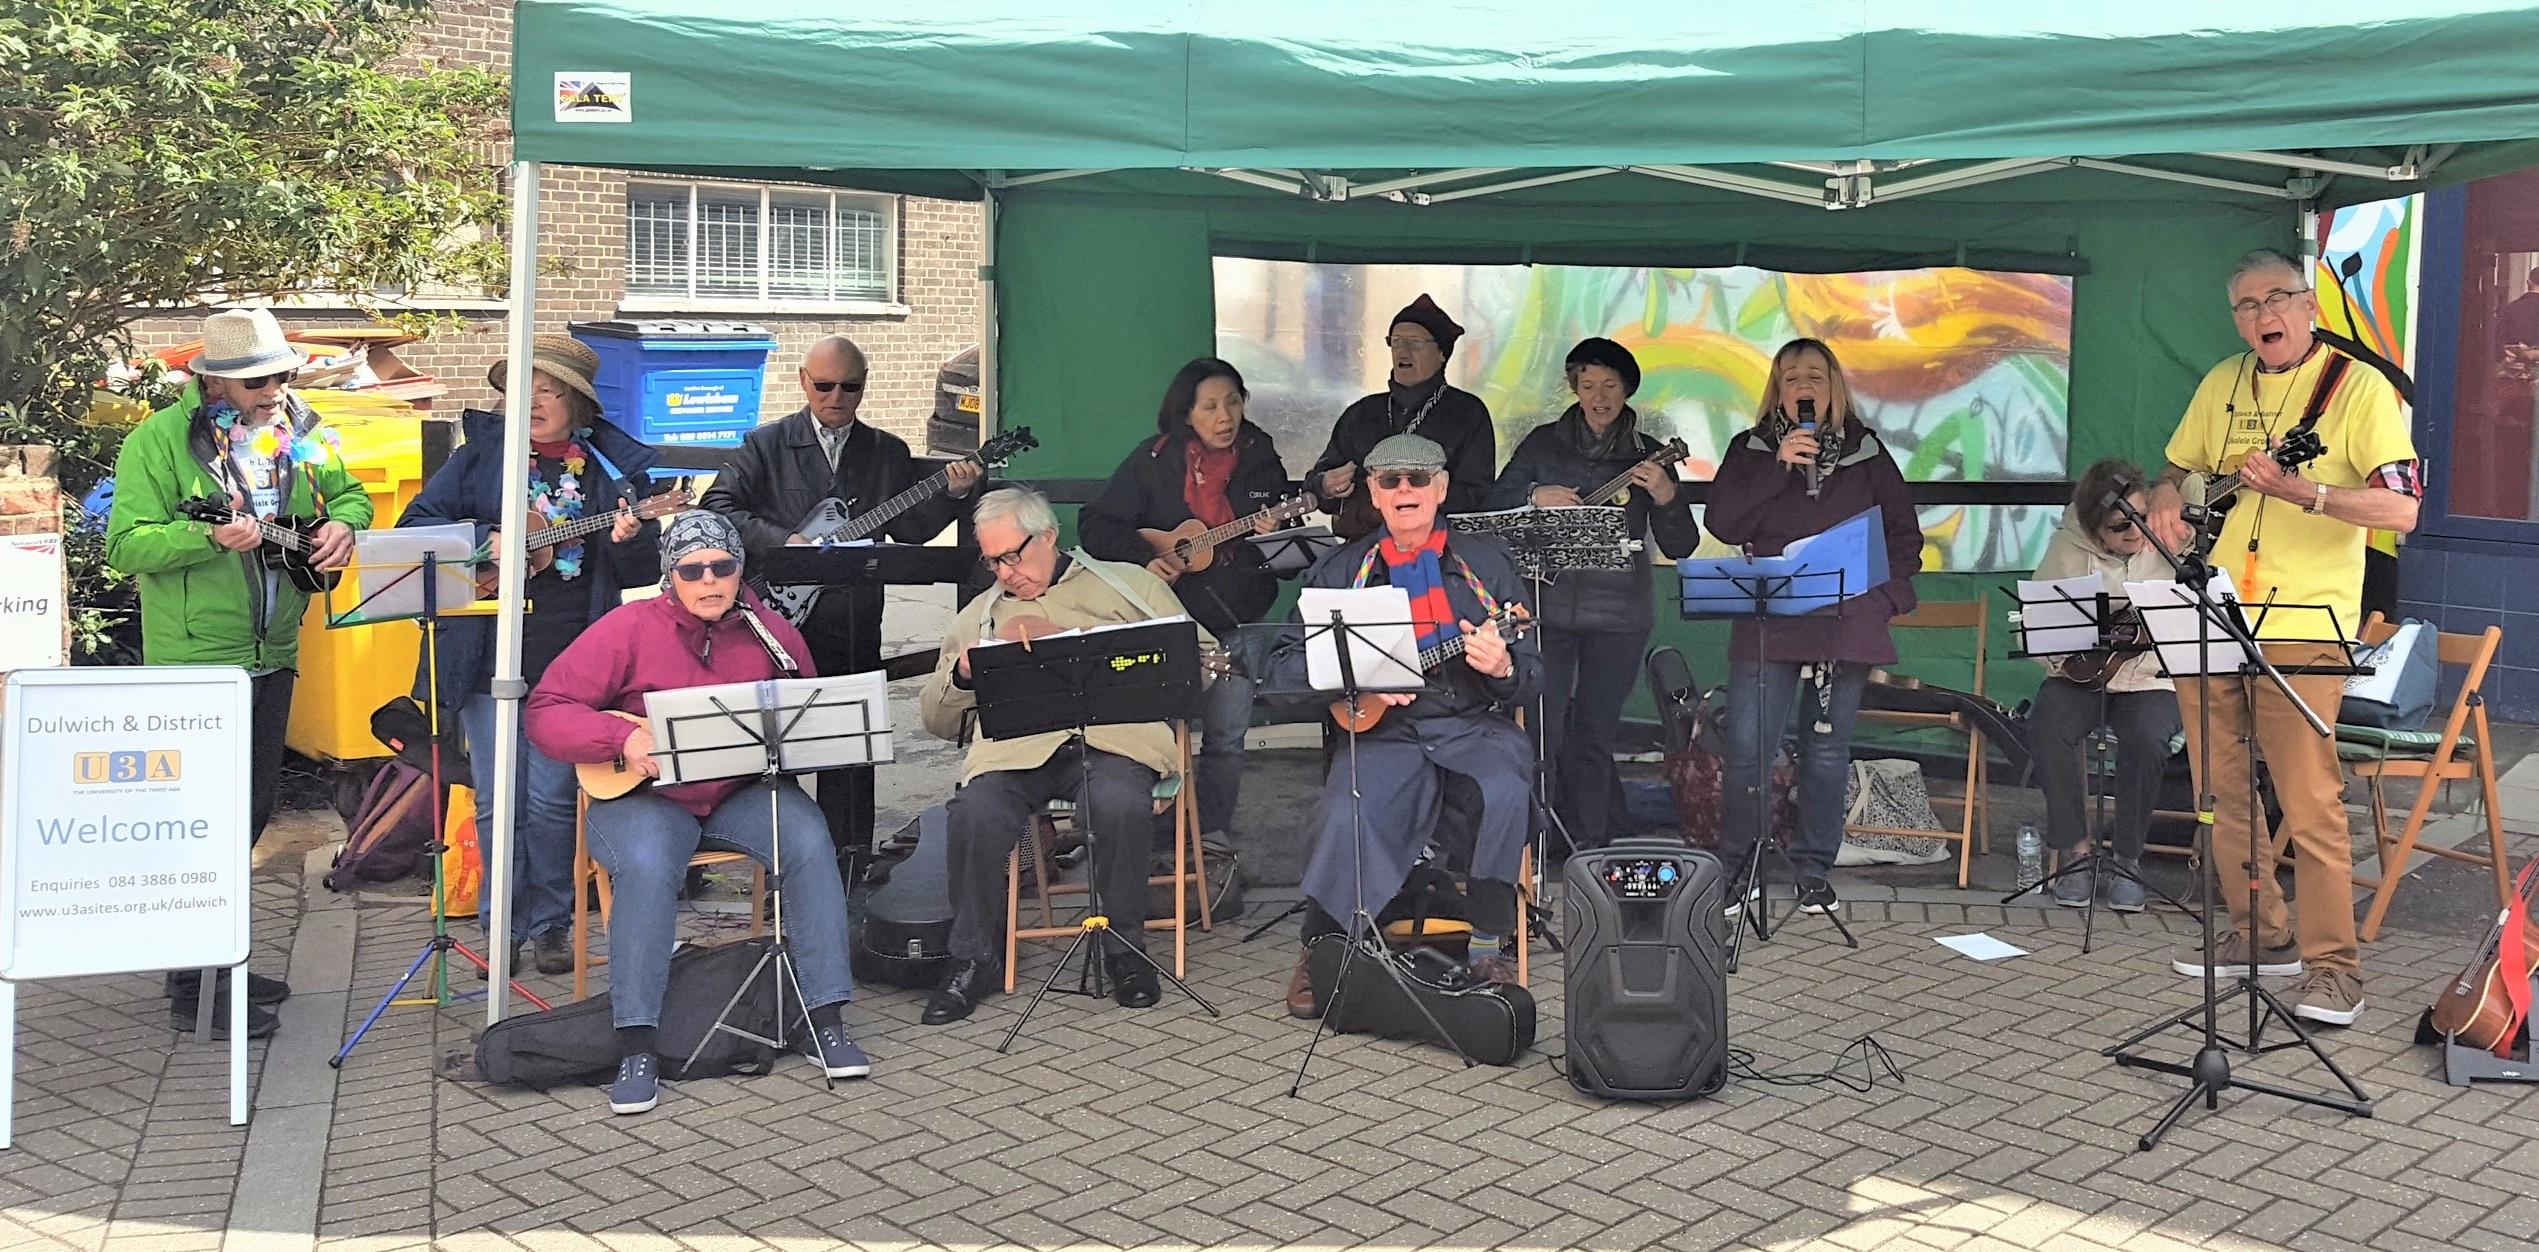 UKULELE GROUP FOREST HILL STATION